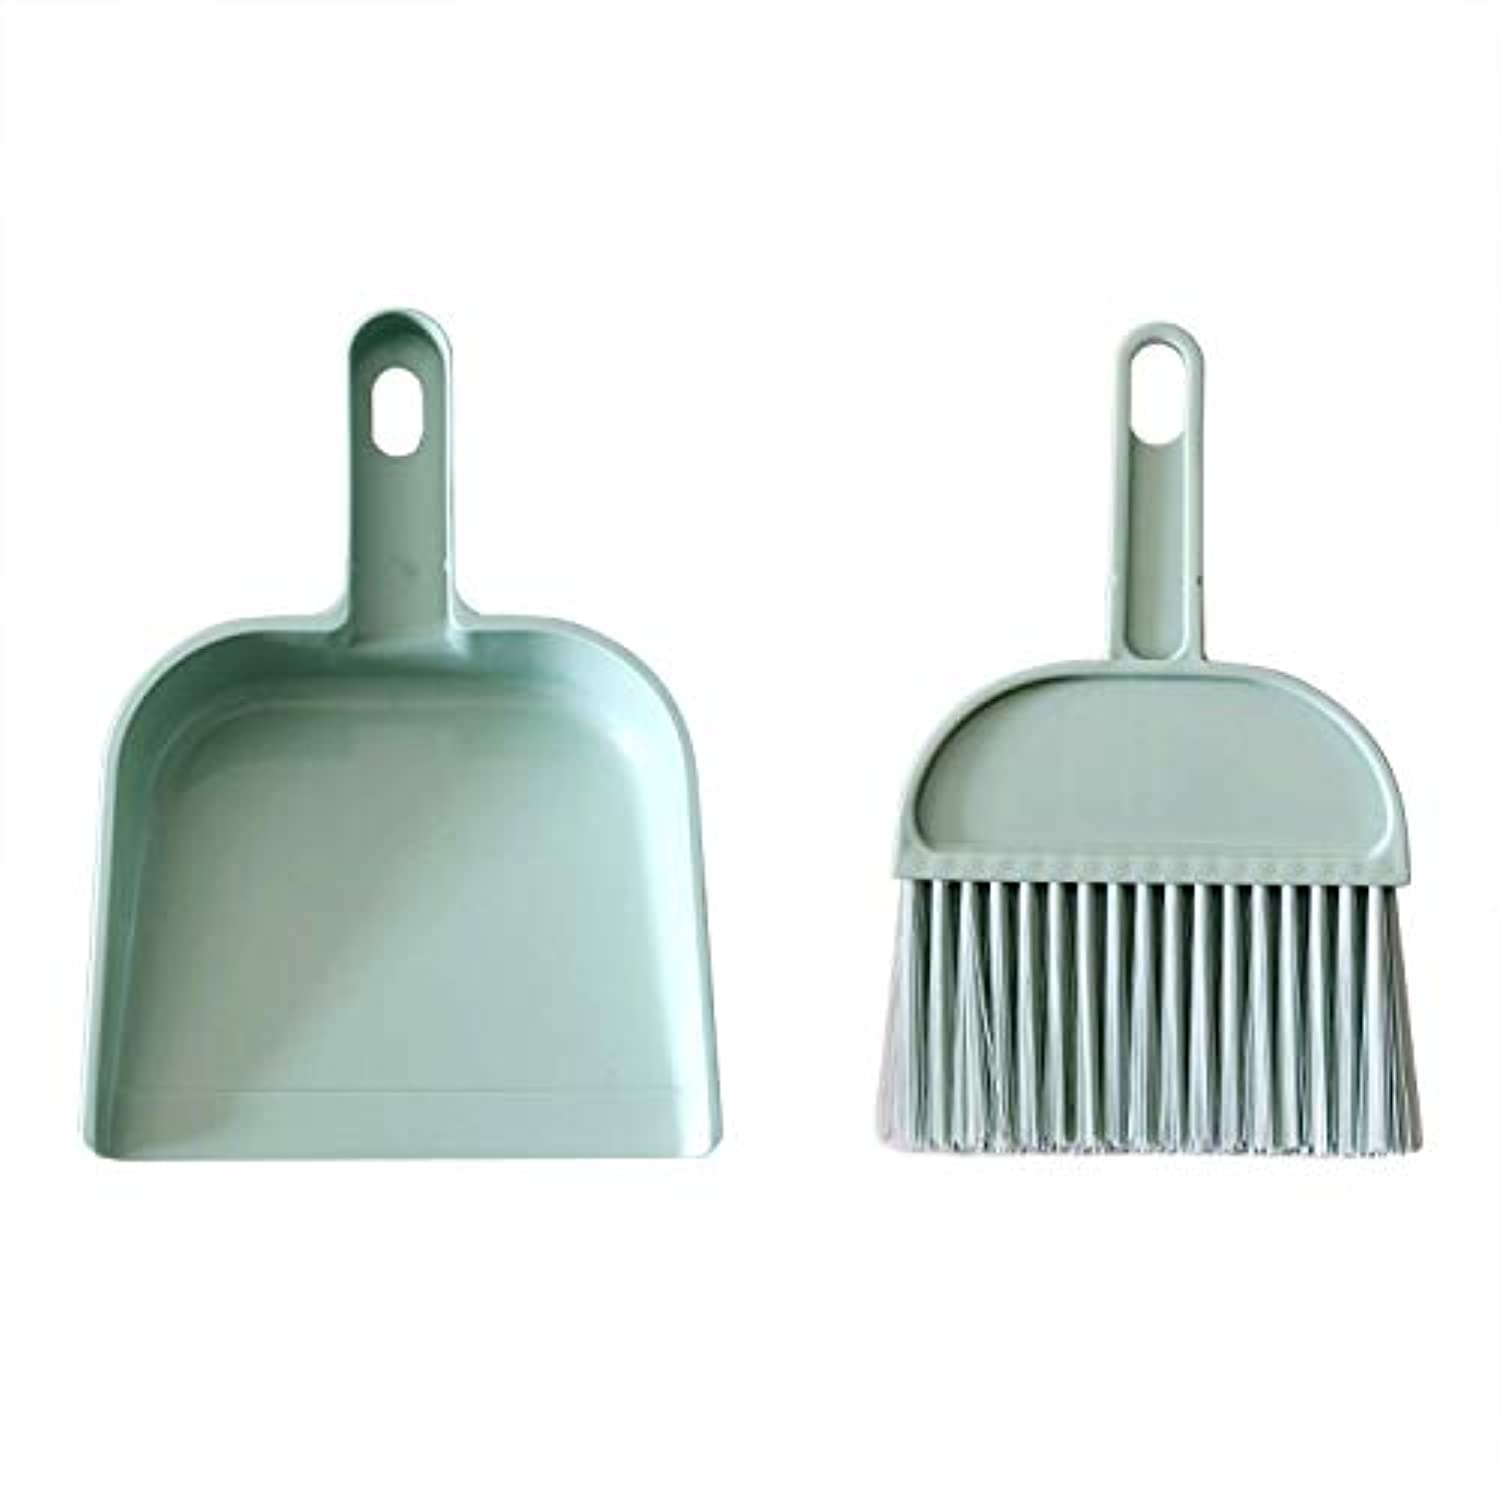 Classier: Buy RYPET RYPET Cage Cleaner for Guinea Pigs, Hamsters, Chinchillas, Rabbits, Reptiles, Hedgehogs and Other Small Animals - Mini Dustpan and Brush Set Cleaning Tool for Animal Waste (1 Pack)